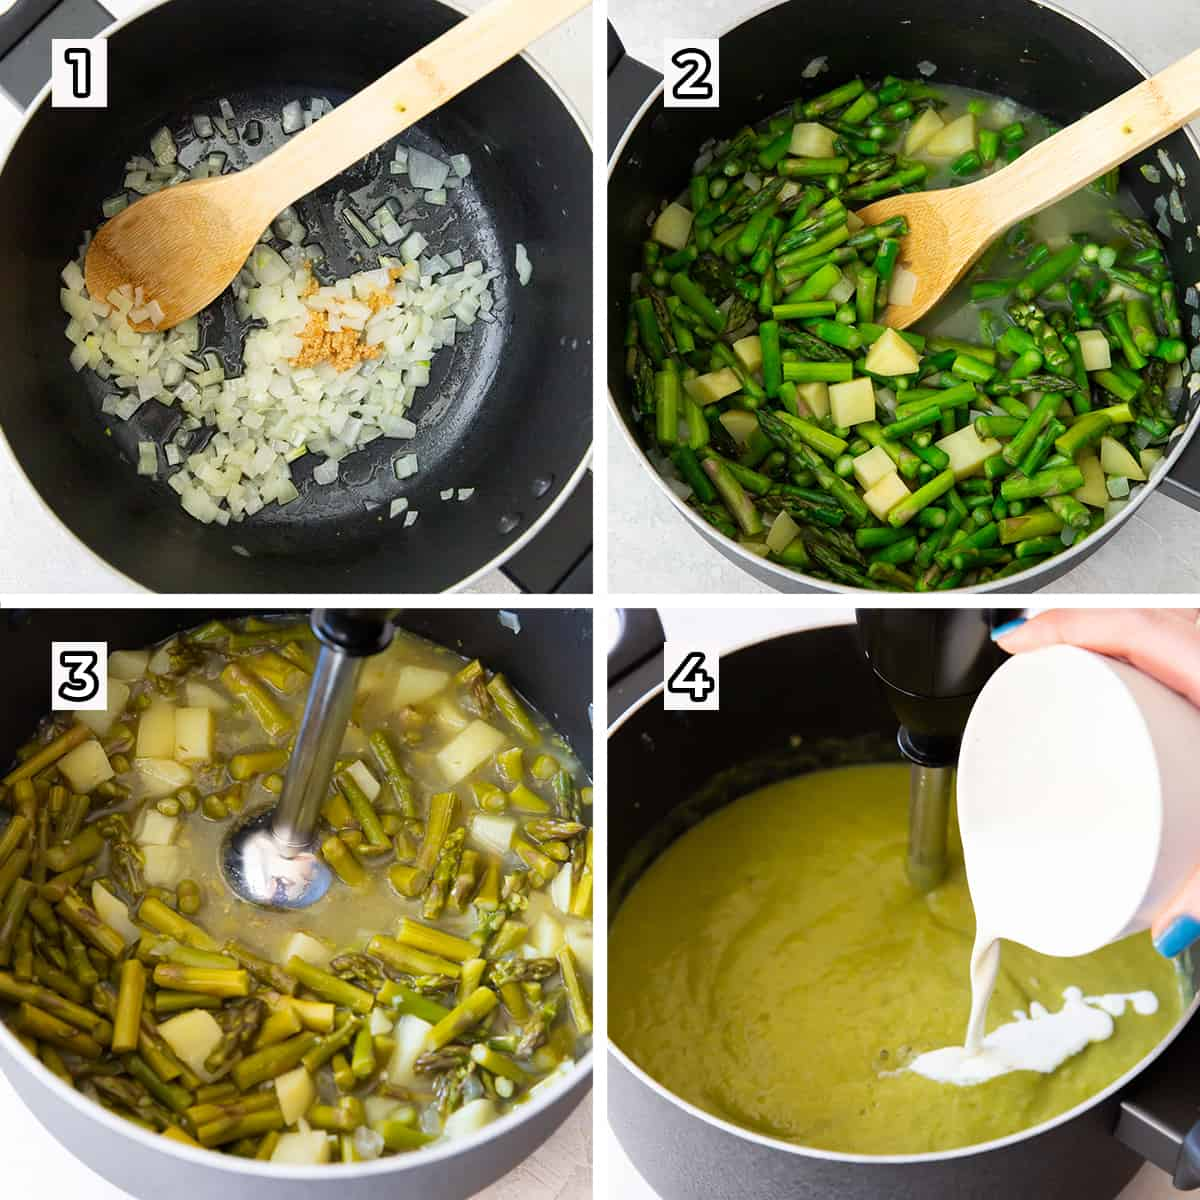 Asparagus and other ingredients cook in a pot.